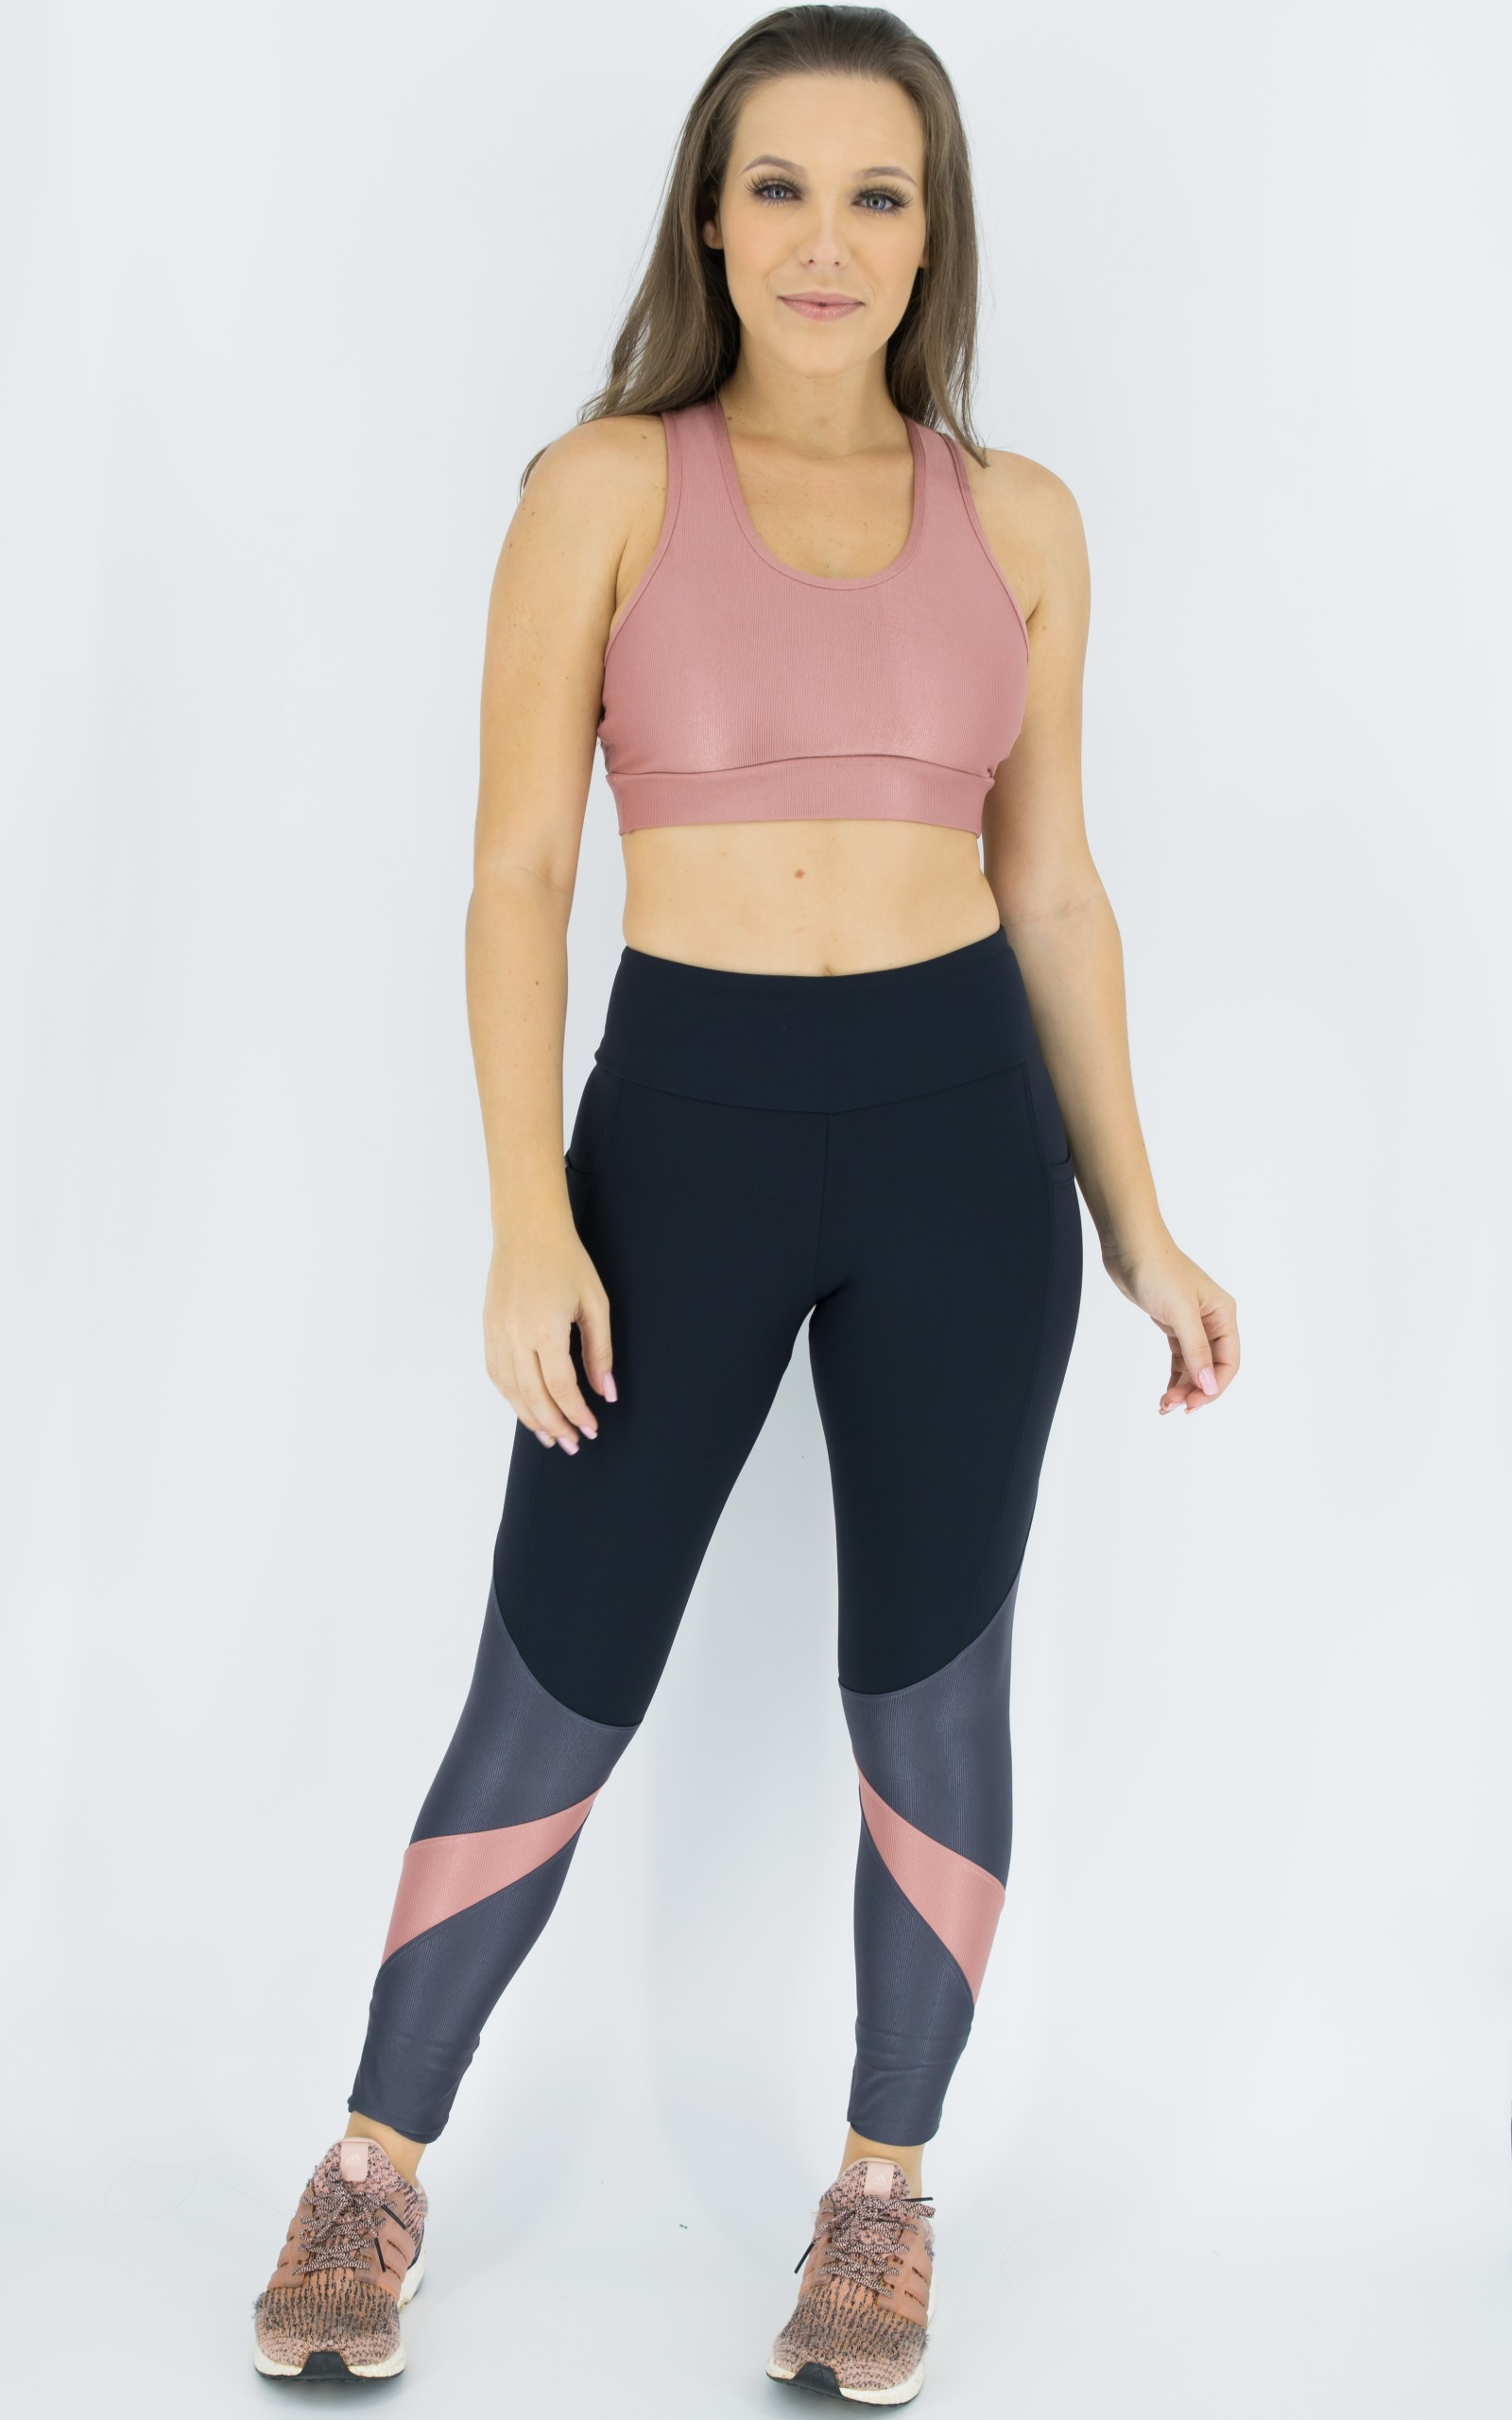 Legging Pratic Chumbo, Coleção Move Your Body - NKT Fitwear Moda Fitness